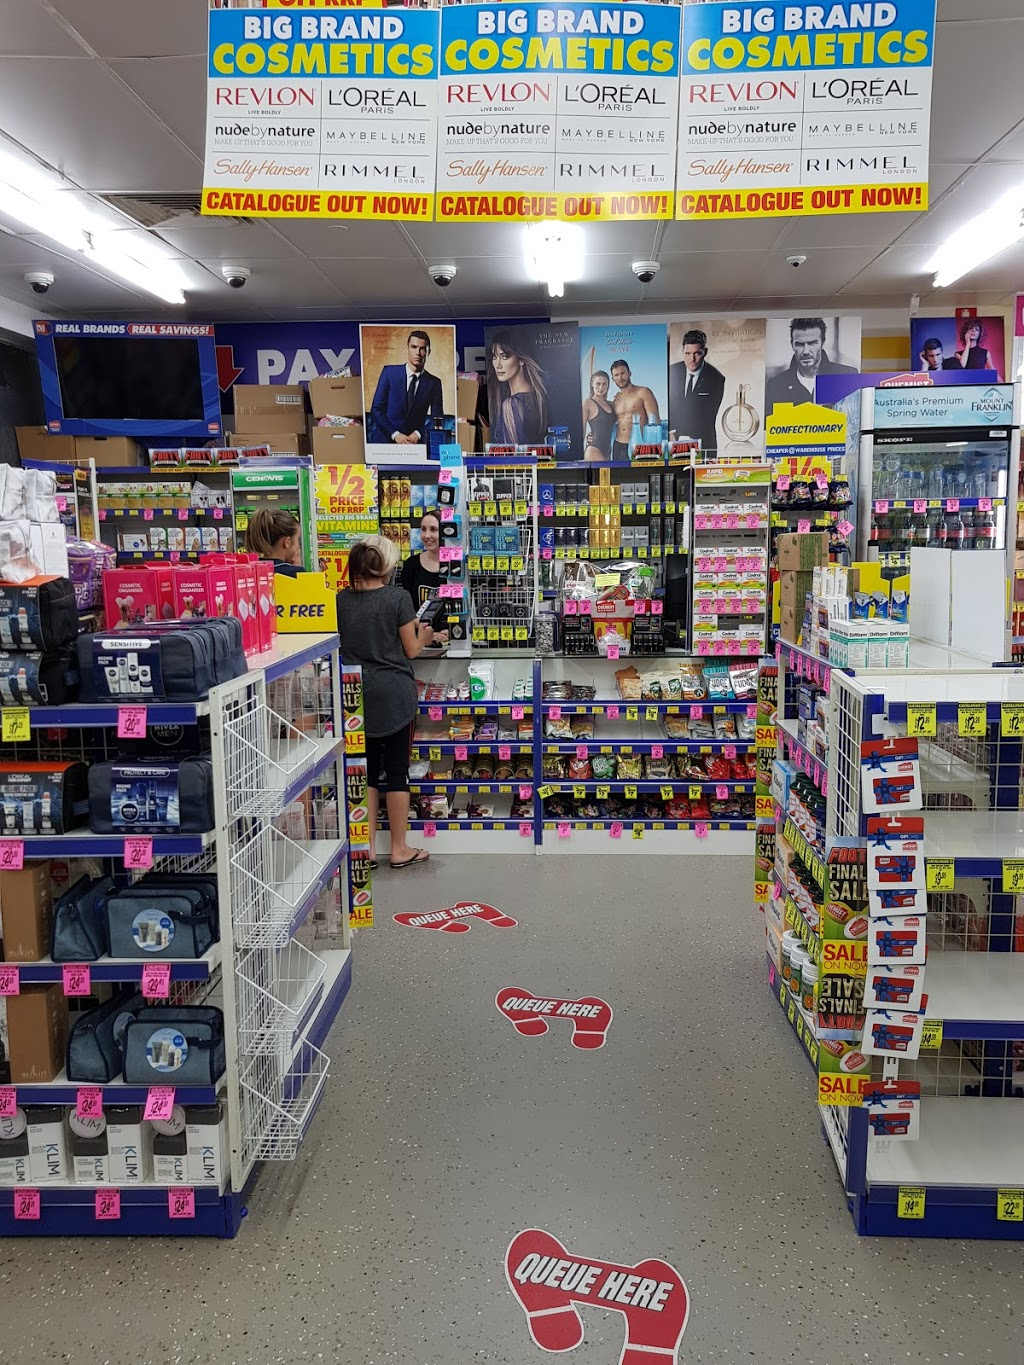 Chemist Warehouse Mackay | pharmacy | 203 Victoria St, Mackay QLD 4740, Australia | 0749440454 OR +61 7 4944 0454